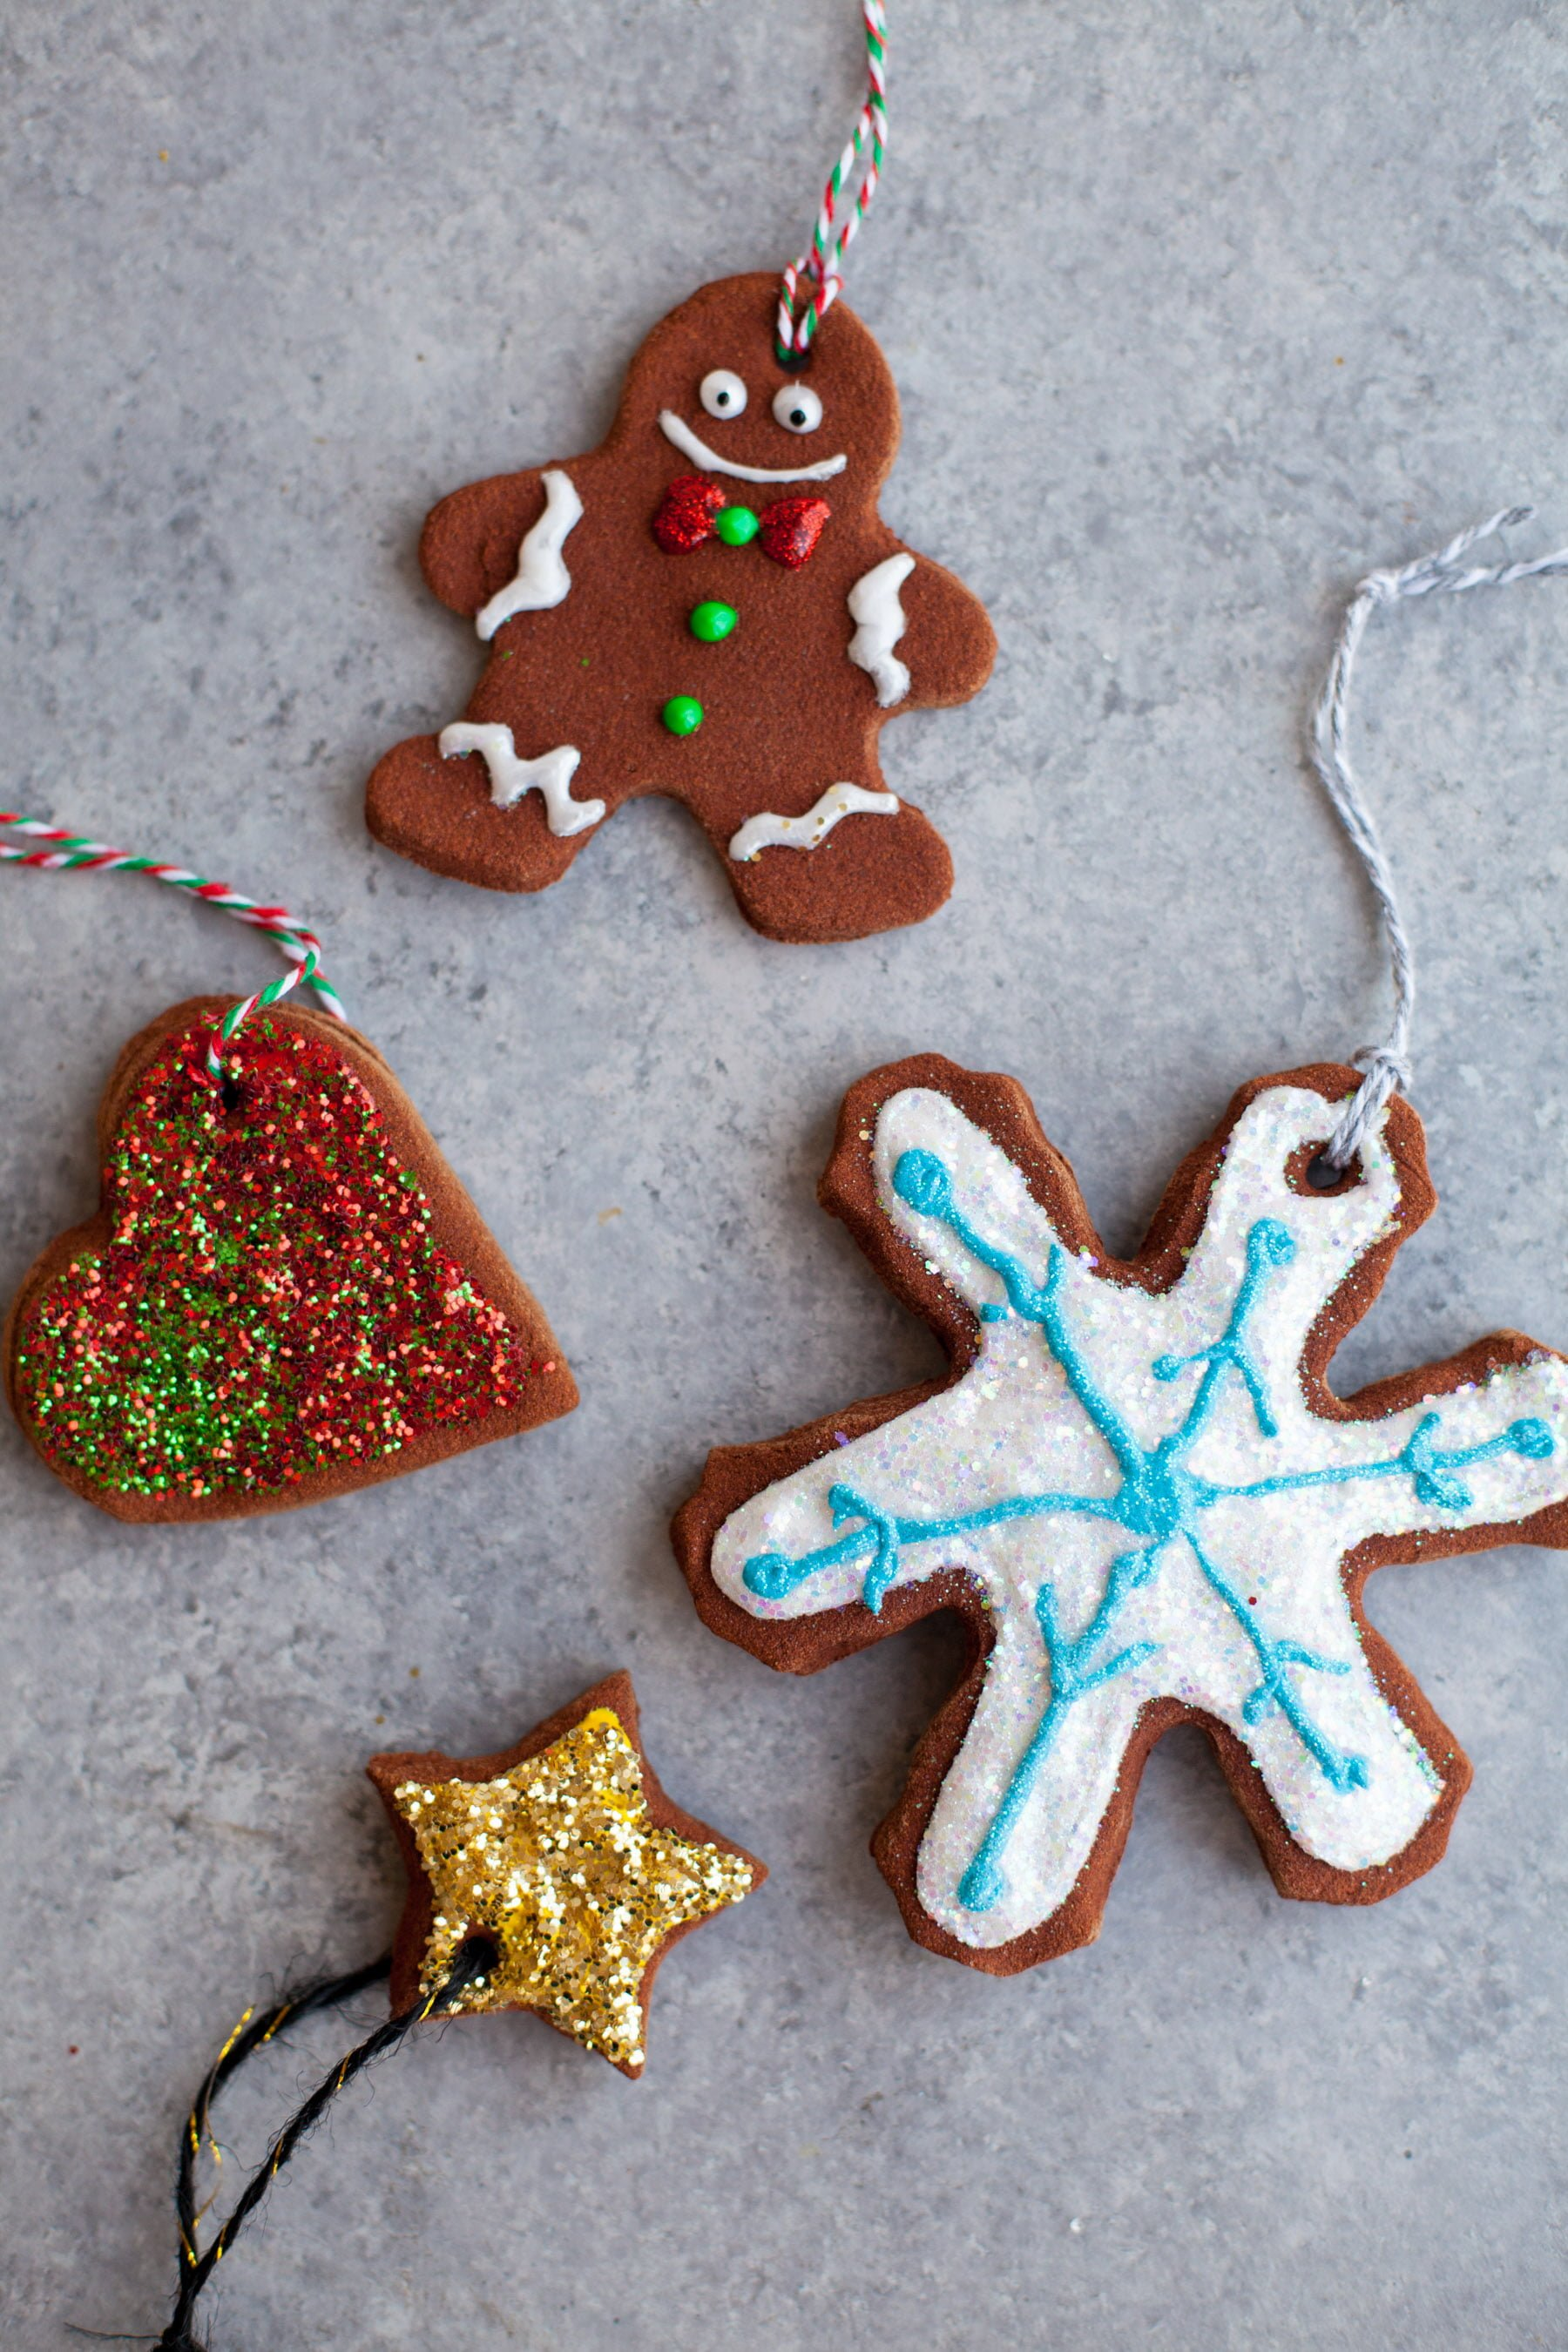 homemade cinnamon ornaments homemade cinnamon ornaments - Gingerbread Christmas Decorations Beautiful To Look